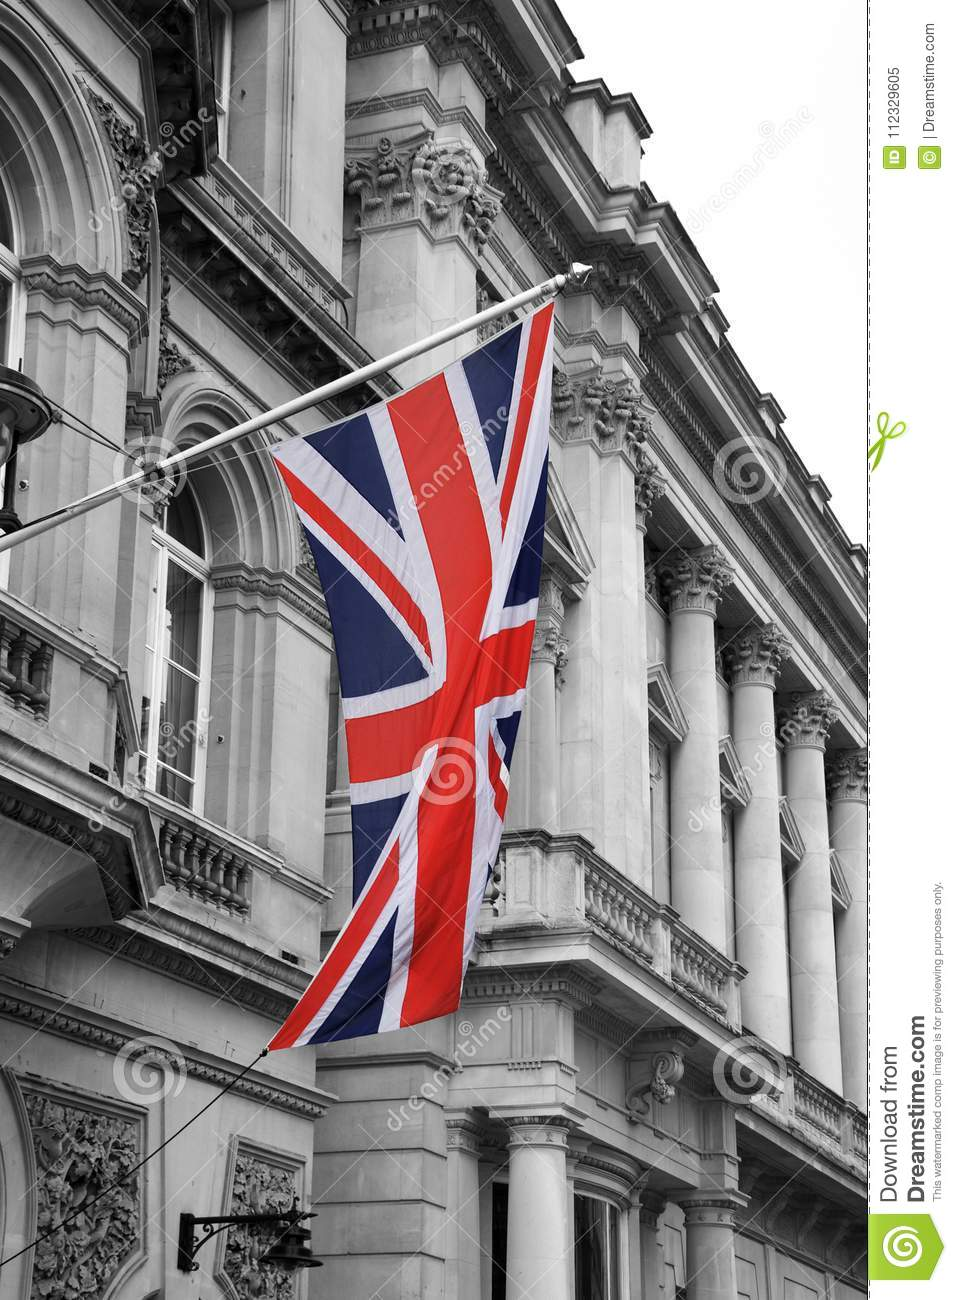 Download A British Union Jack Flag On Pole With Black And White Buildings Stock Image